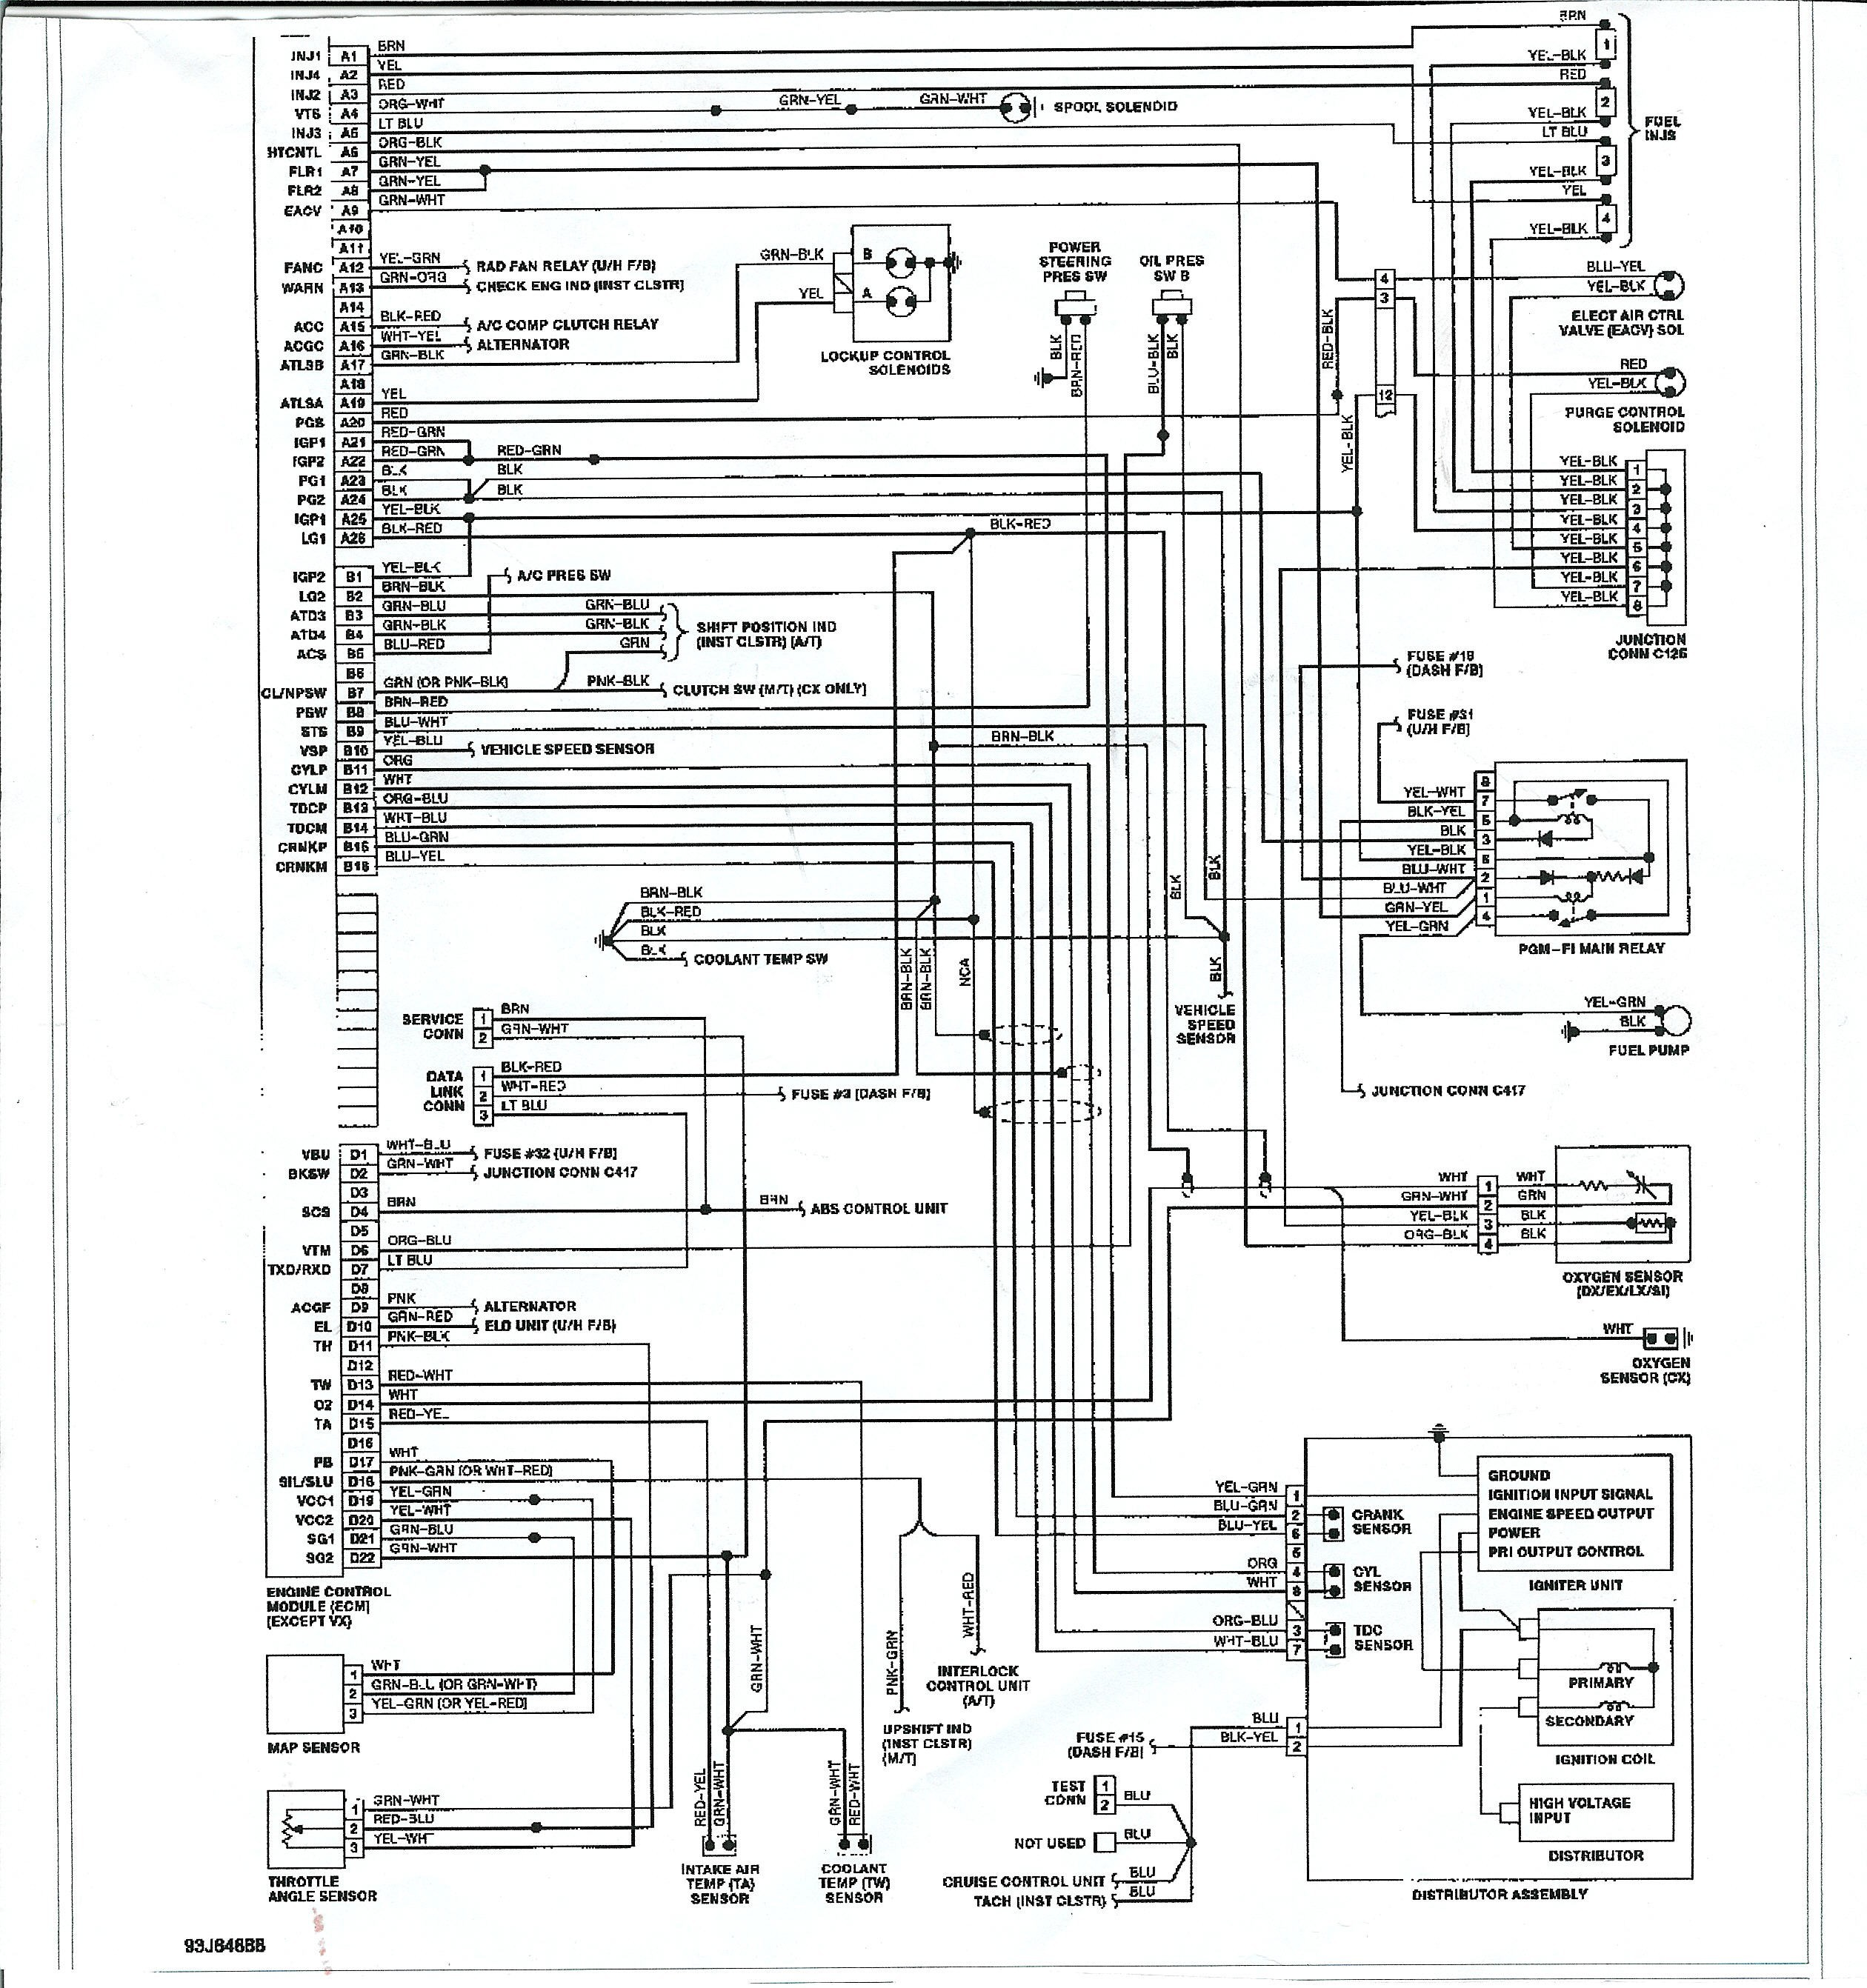 2003 Honda Civic Engine Diagram Download Wiring Diagrams \u2022 2005 Honda  Civic Fuse Diagram 2004 Honda Civic Engine Bay Fuse Diagram